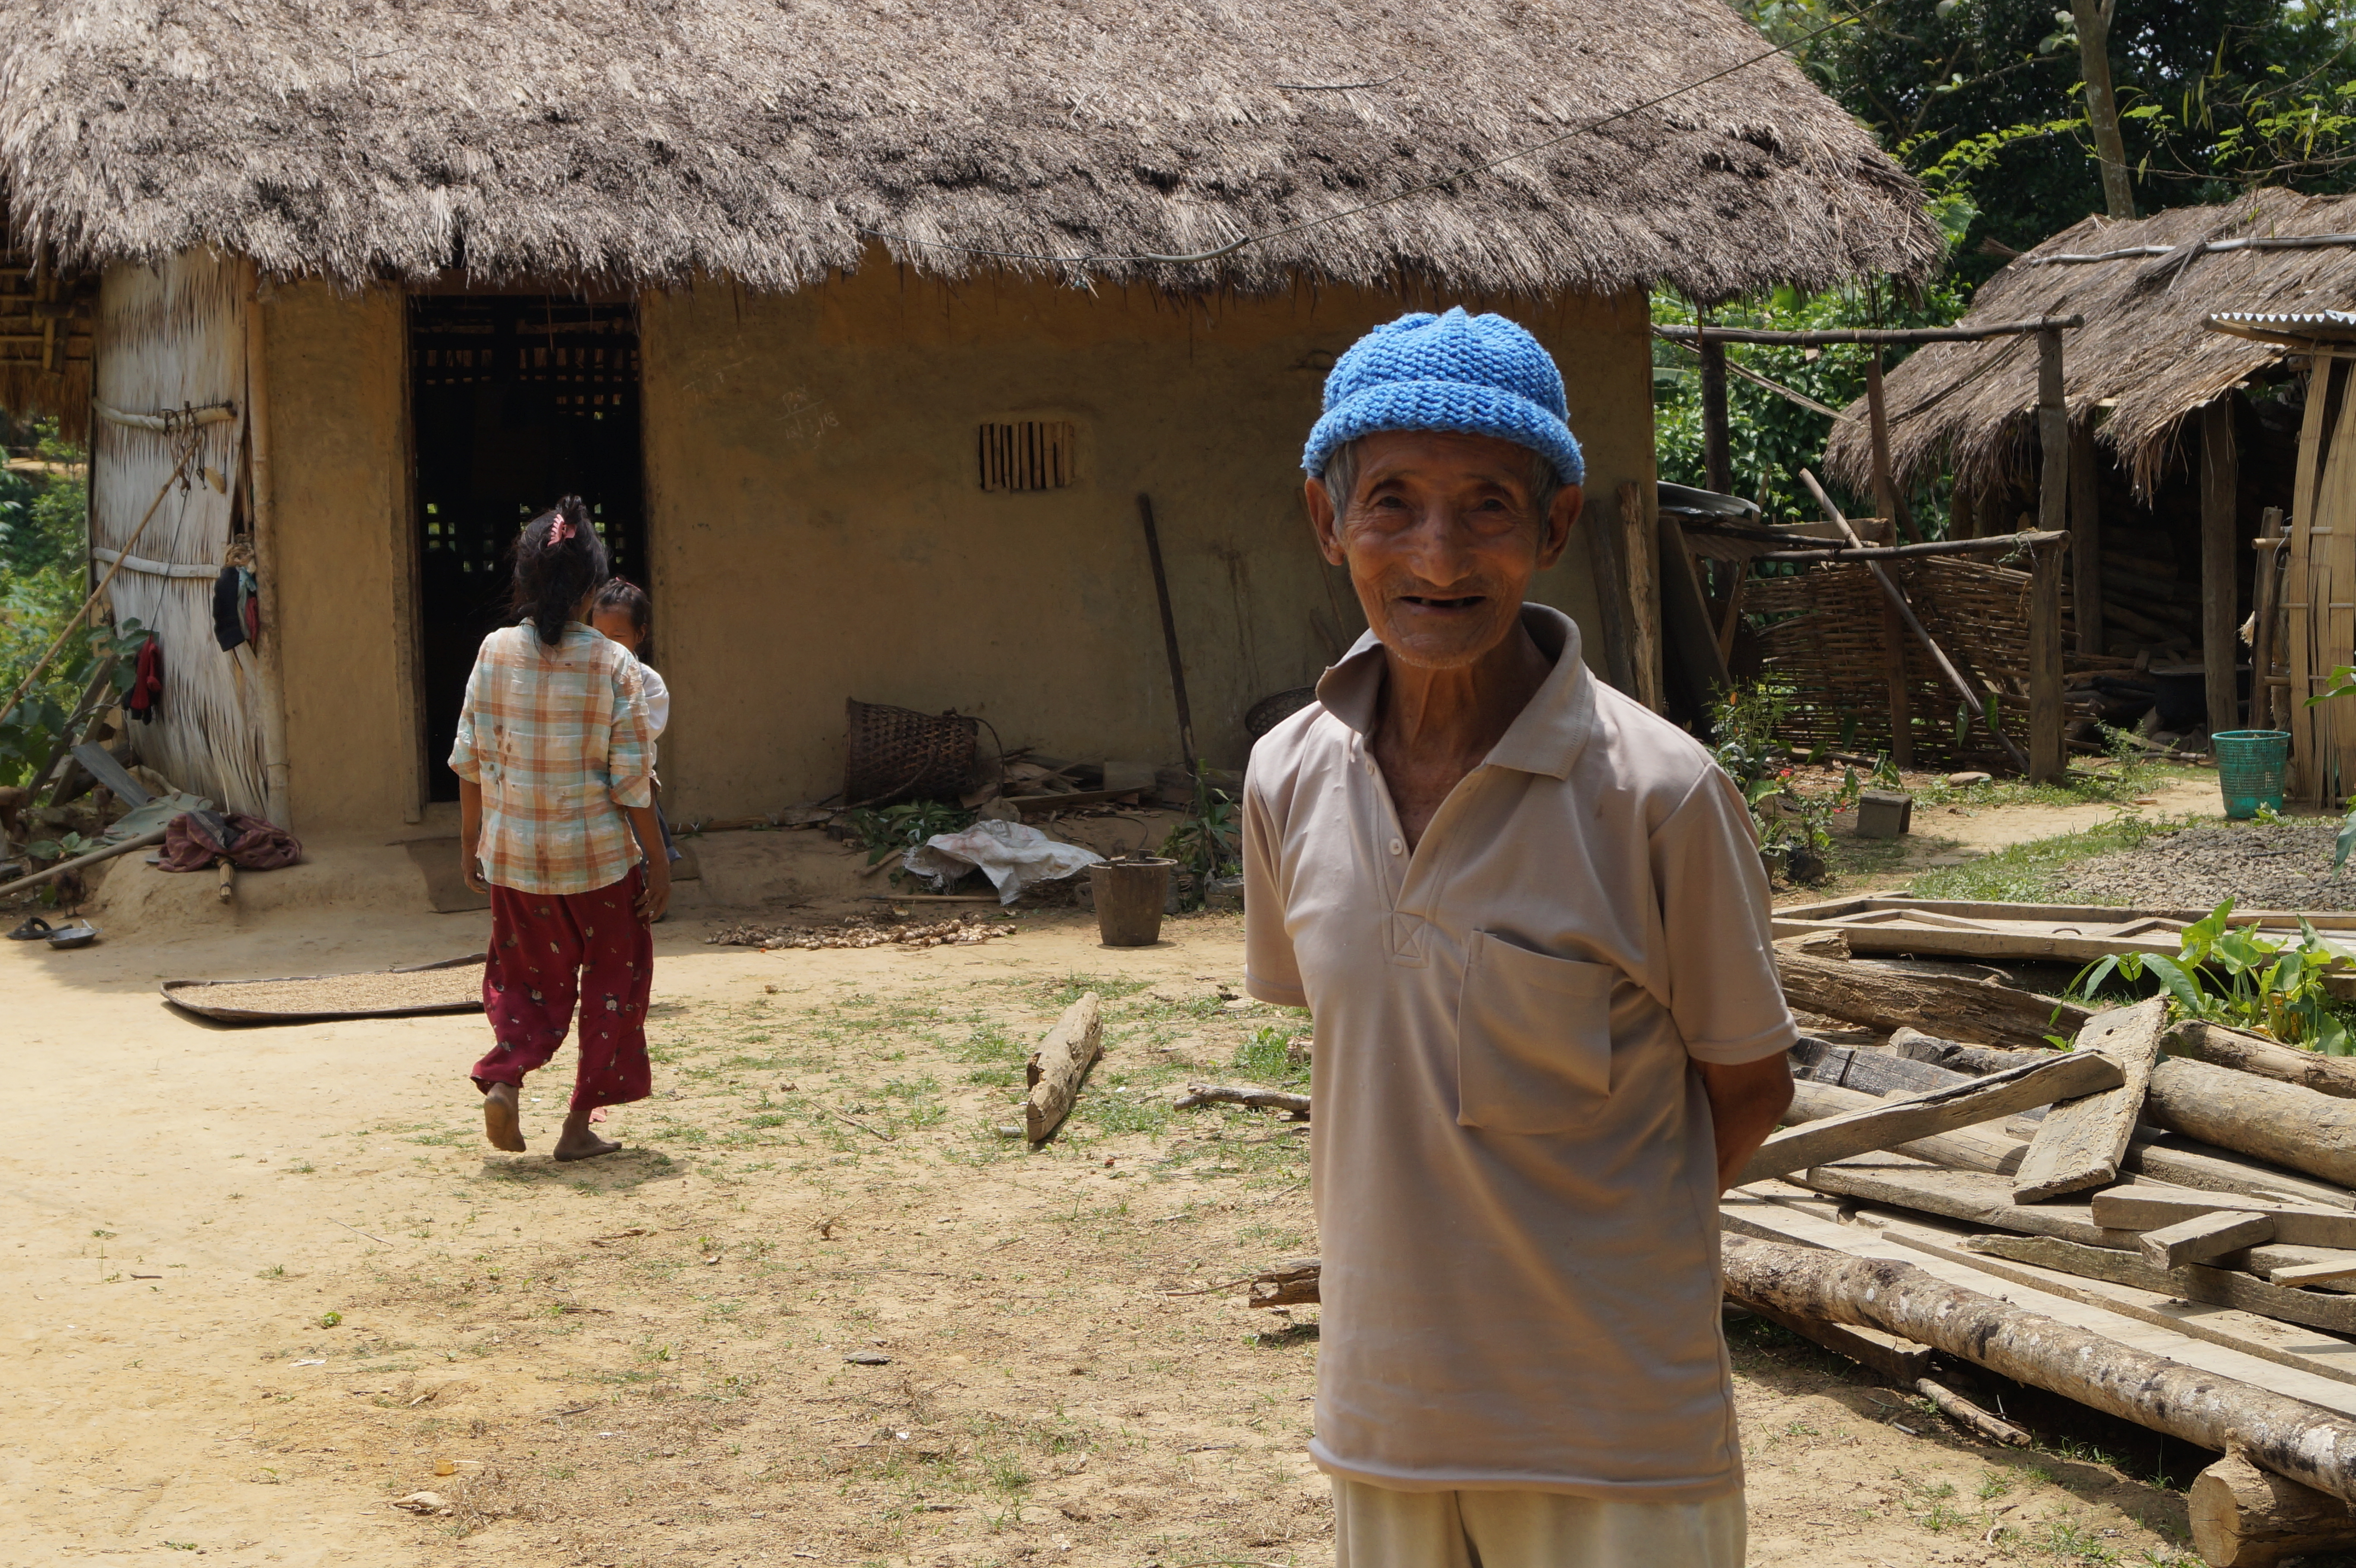 Microloan program boosts pastoral ministry in India